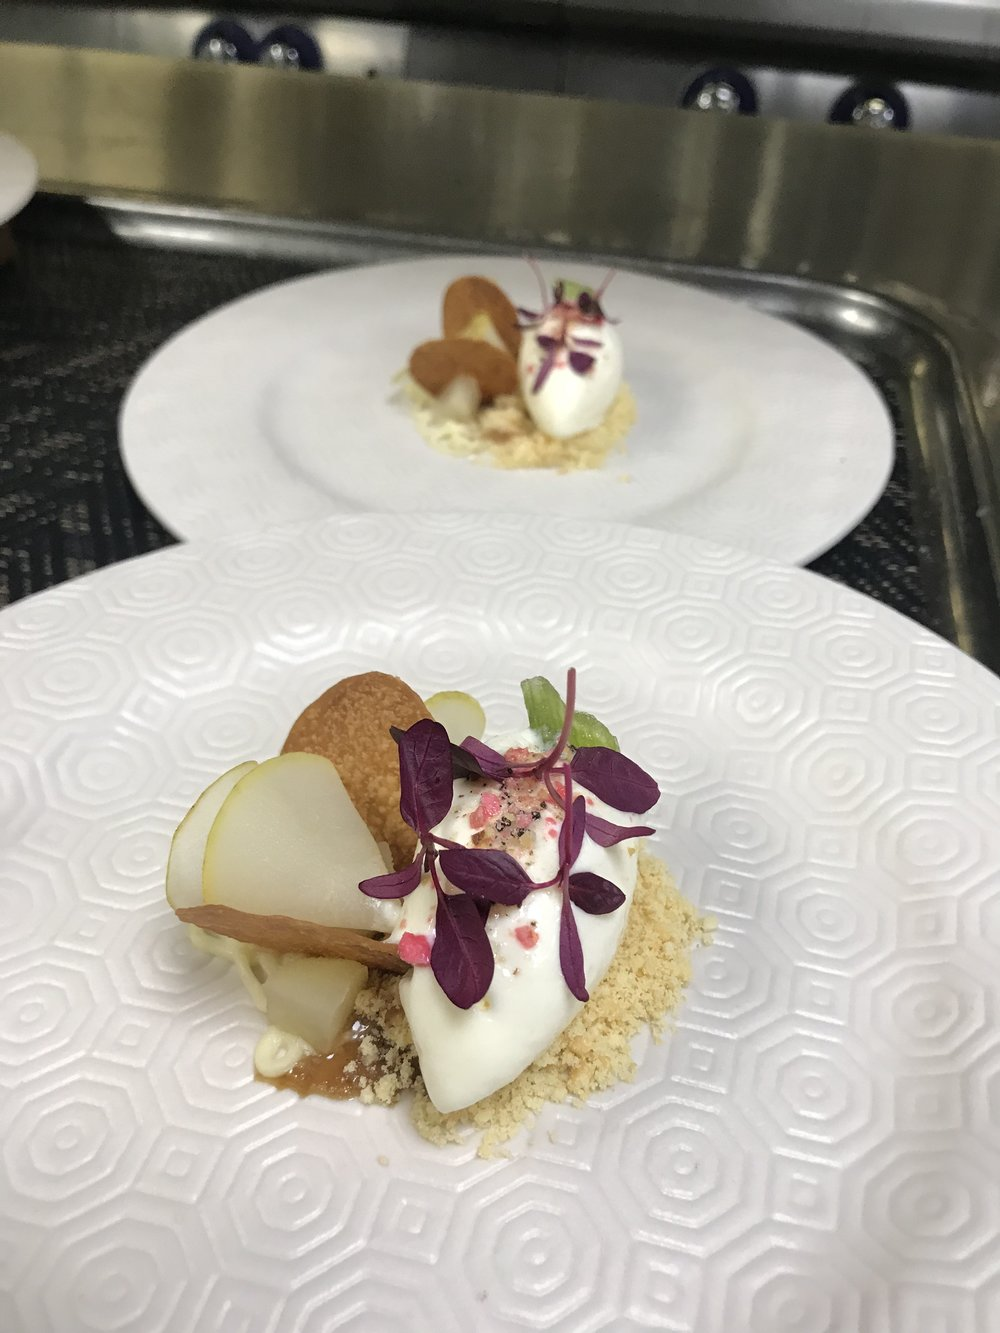 One of the Michelin star quality desserts Matilda helped create.